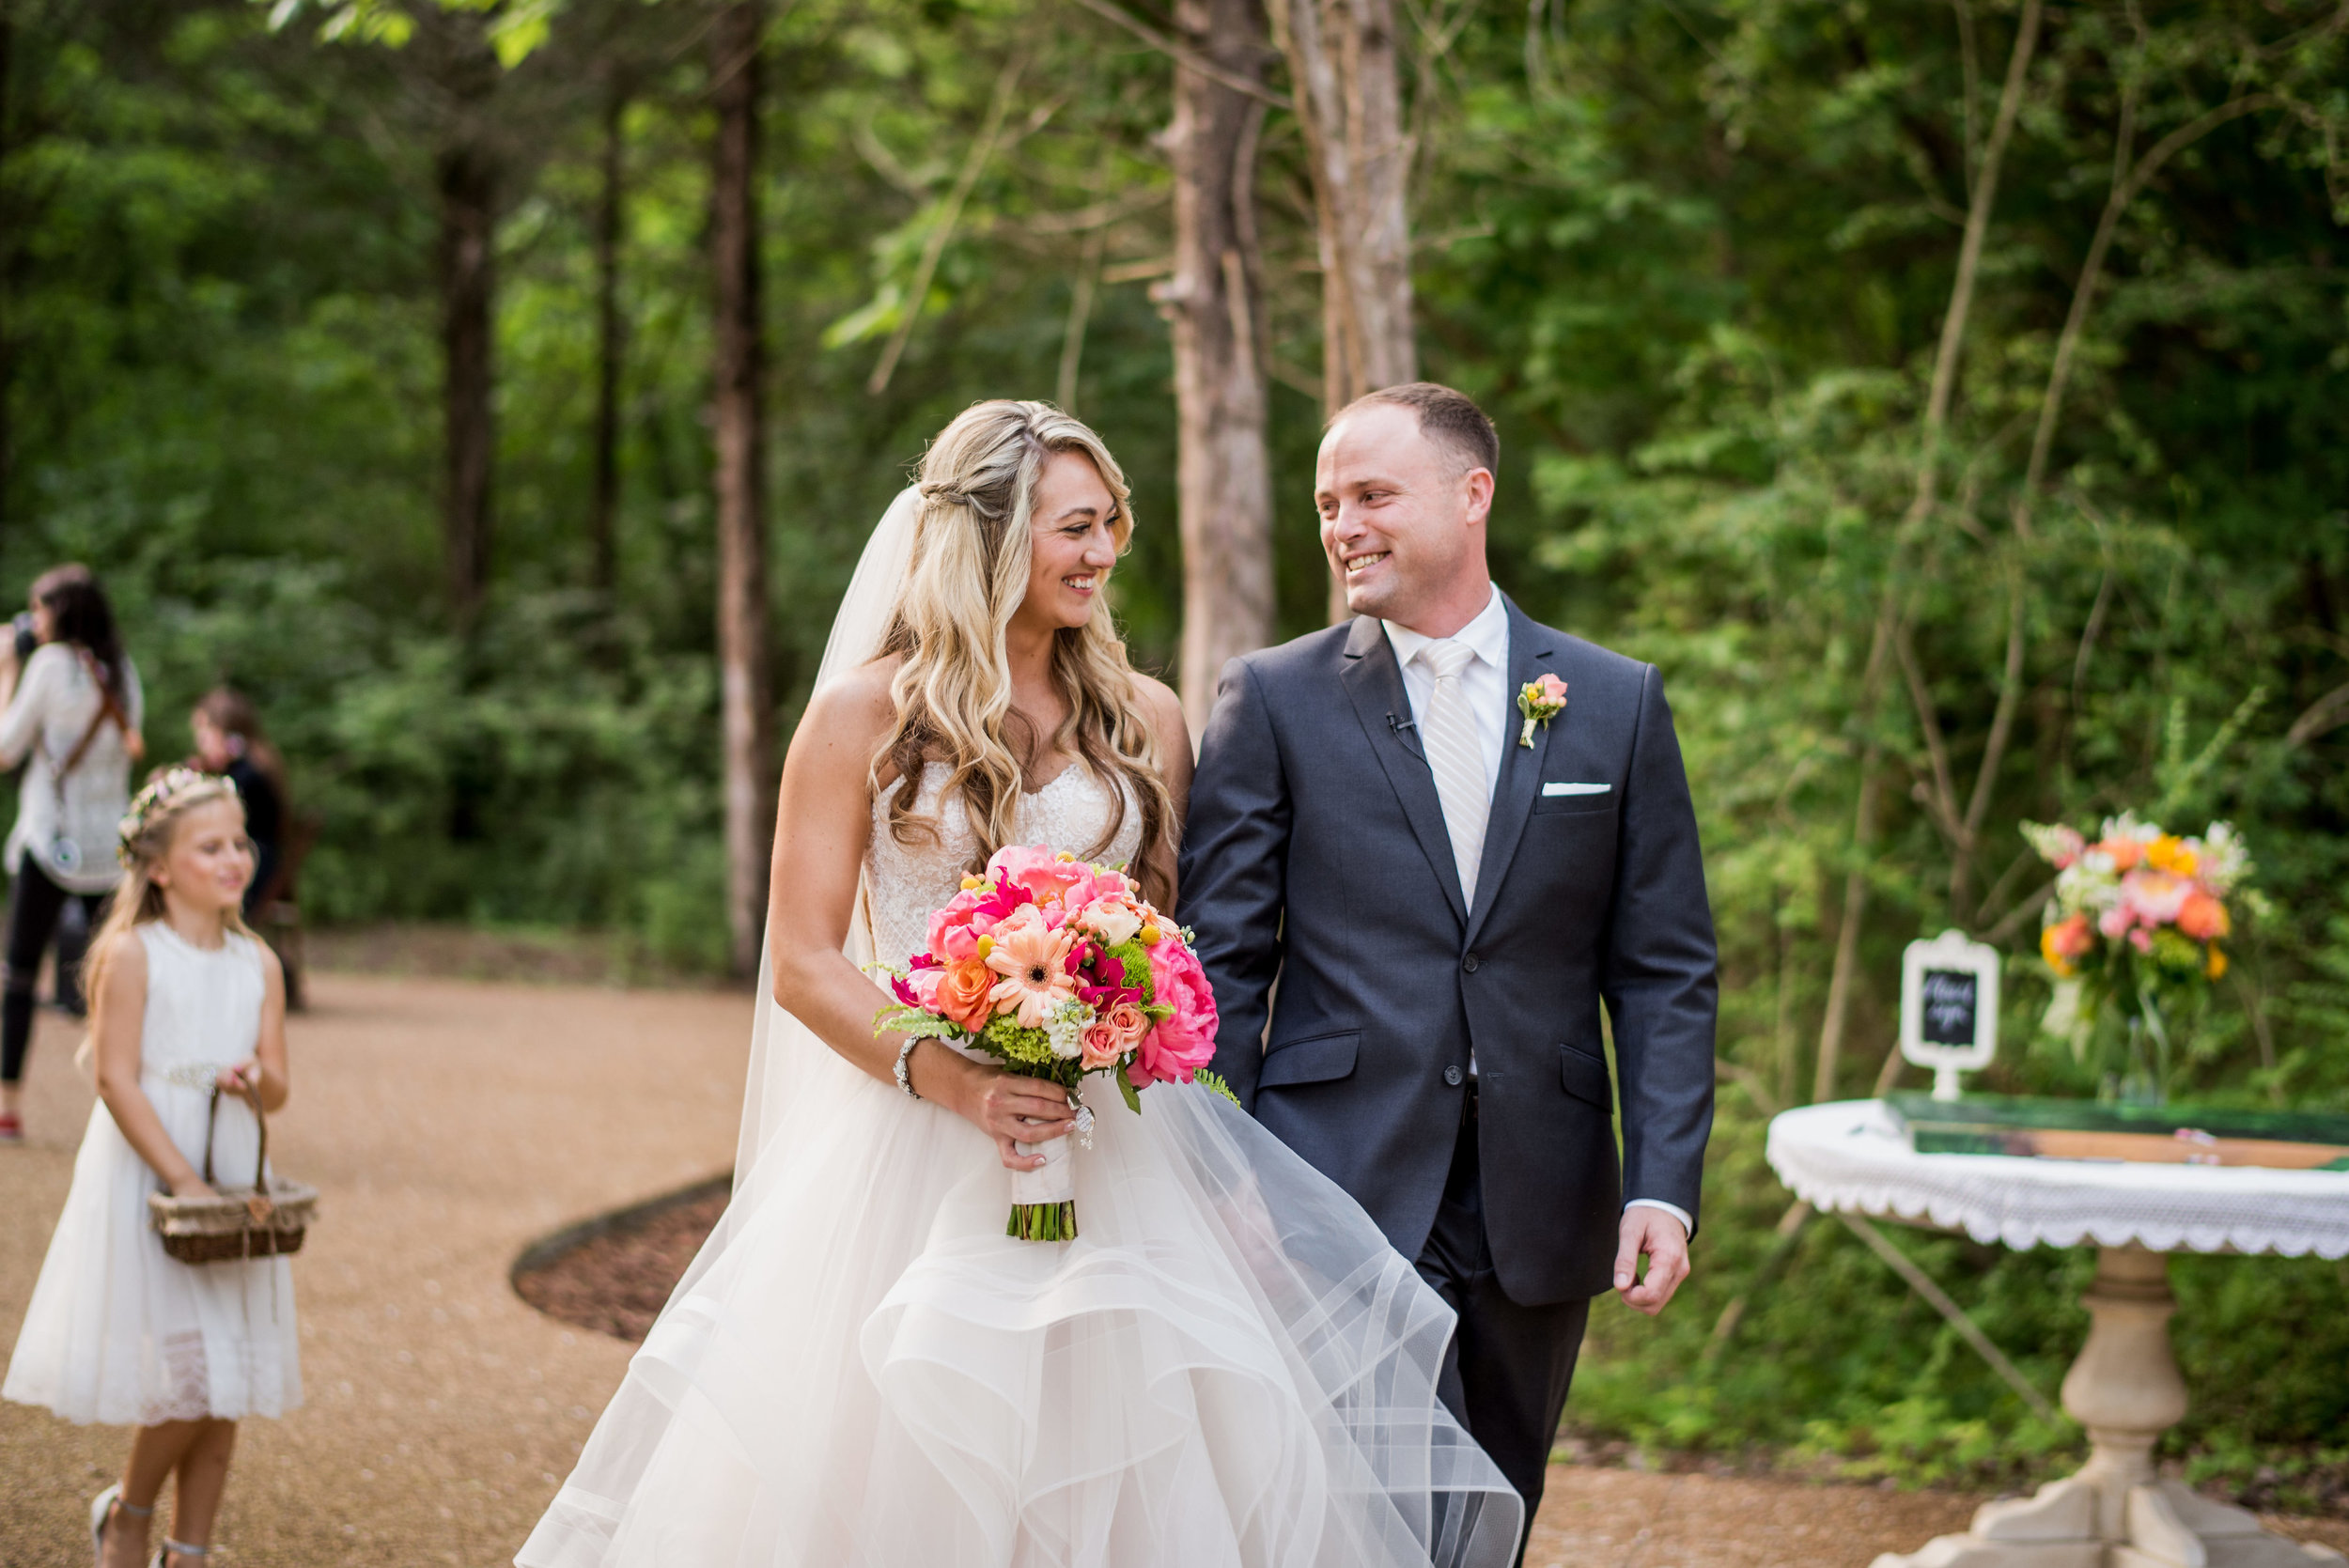 Nashville Wedding Photographers Drakewood Farm-707.jpg